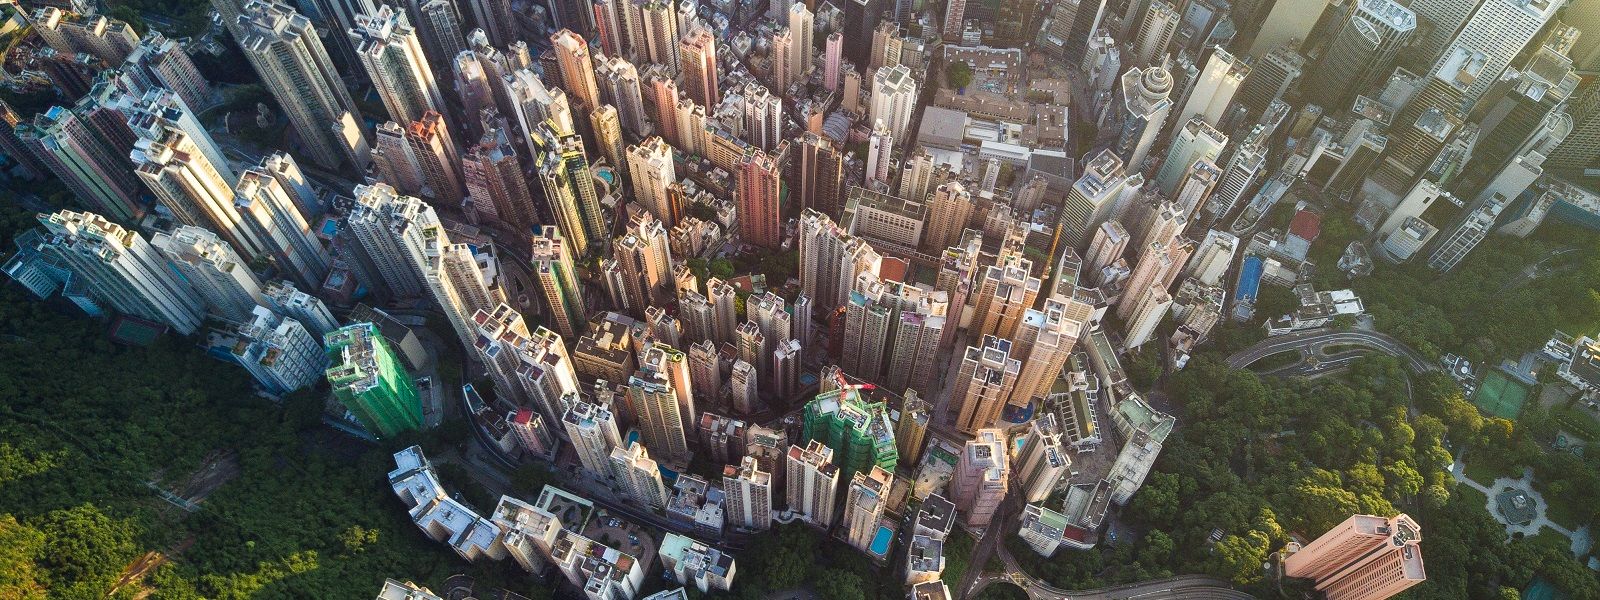 High yield bond issuance grows in APAC despite cooling real estate activity